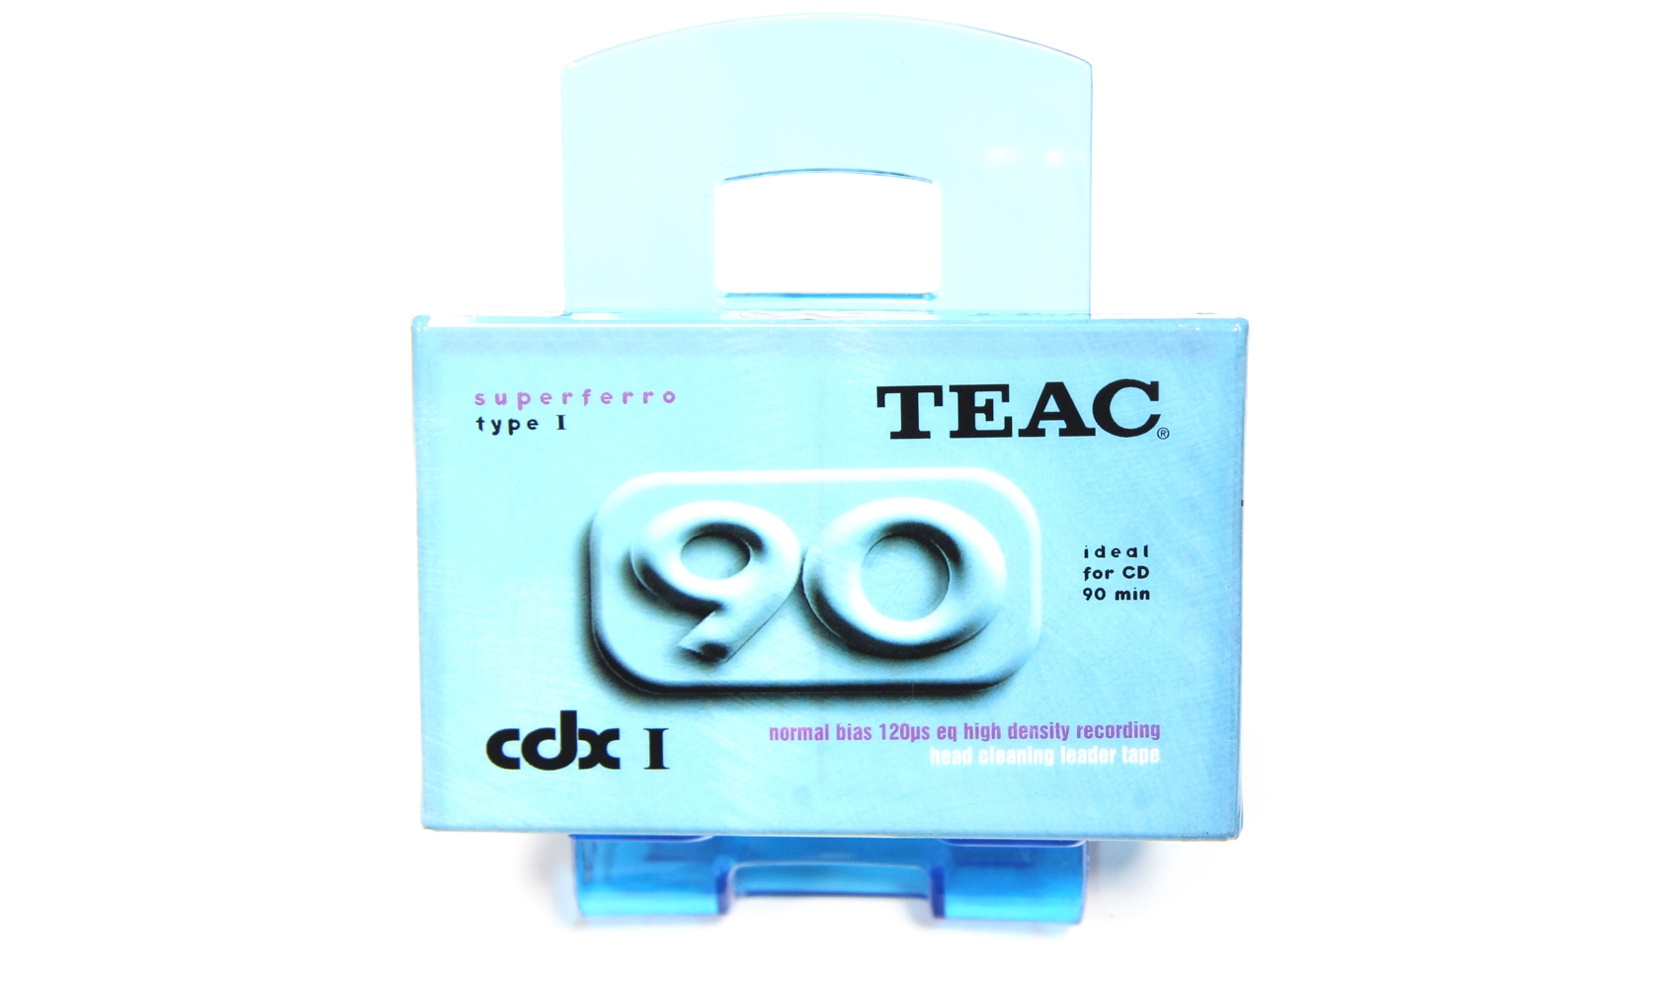 TEAC CDX-90 Superferro Normal